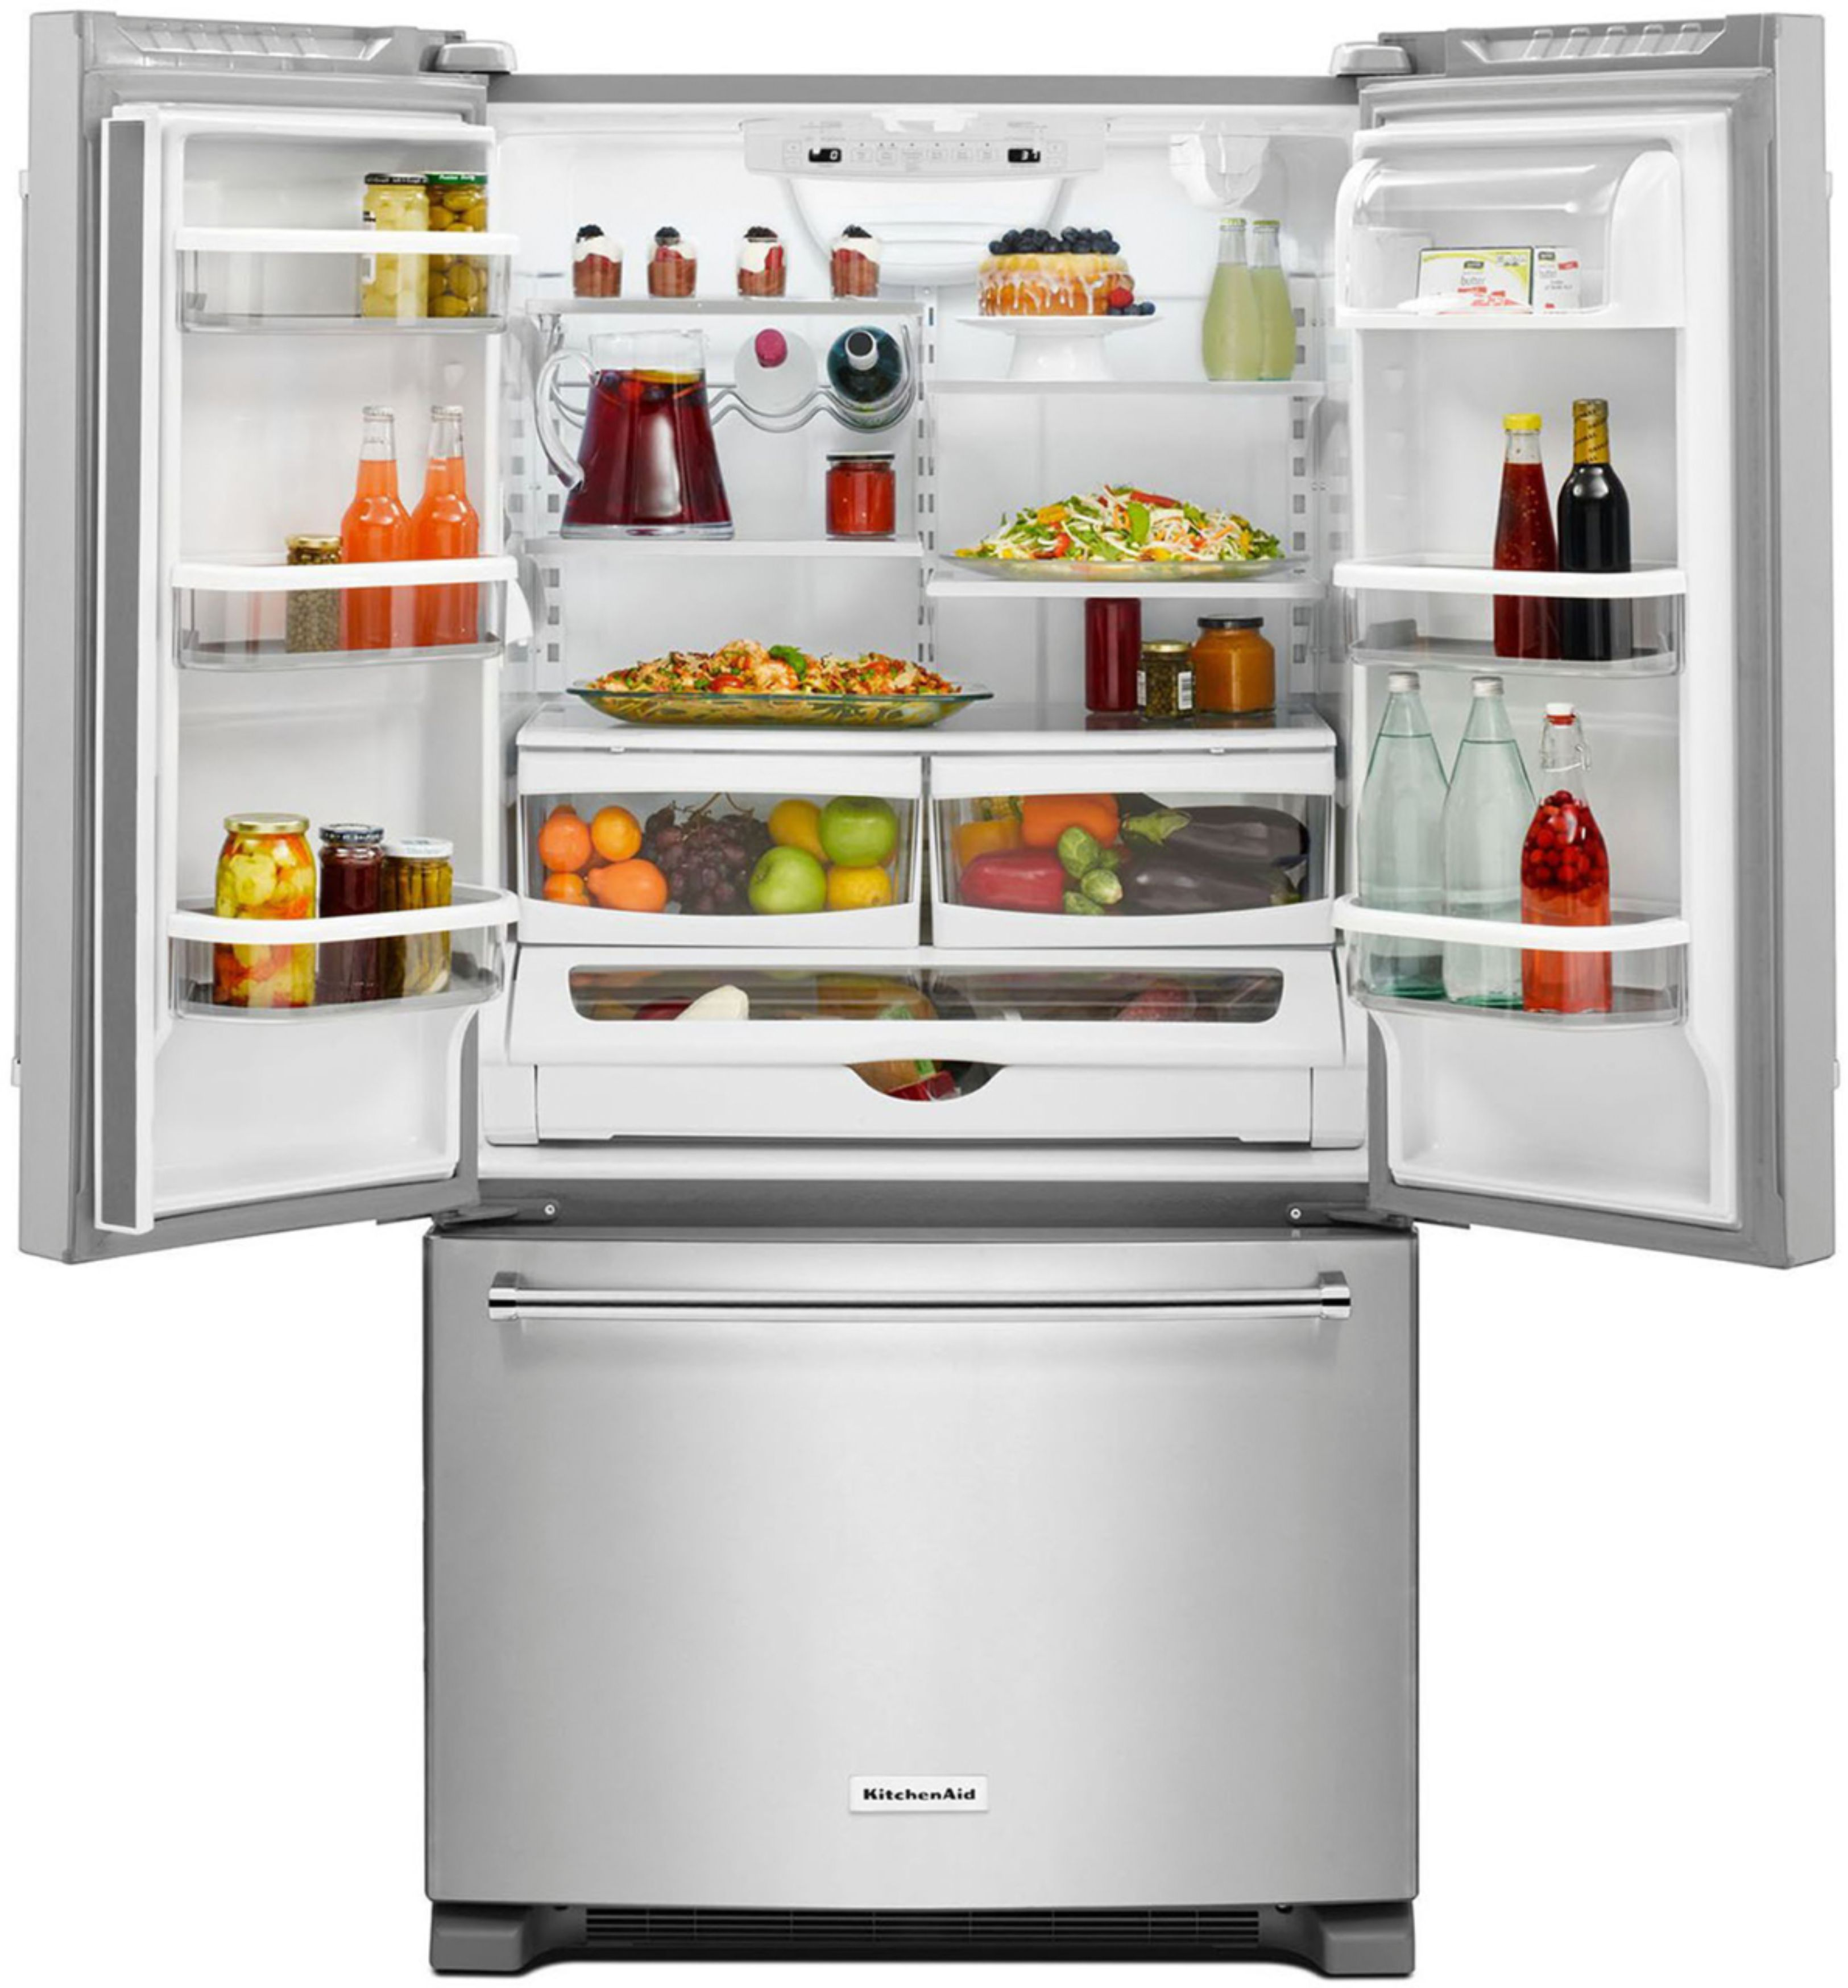 Kitchenaid Krff302ess Kitchenaid 20 Cu Ft French Door Counter Depth Refrigerator Stainless Steel